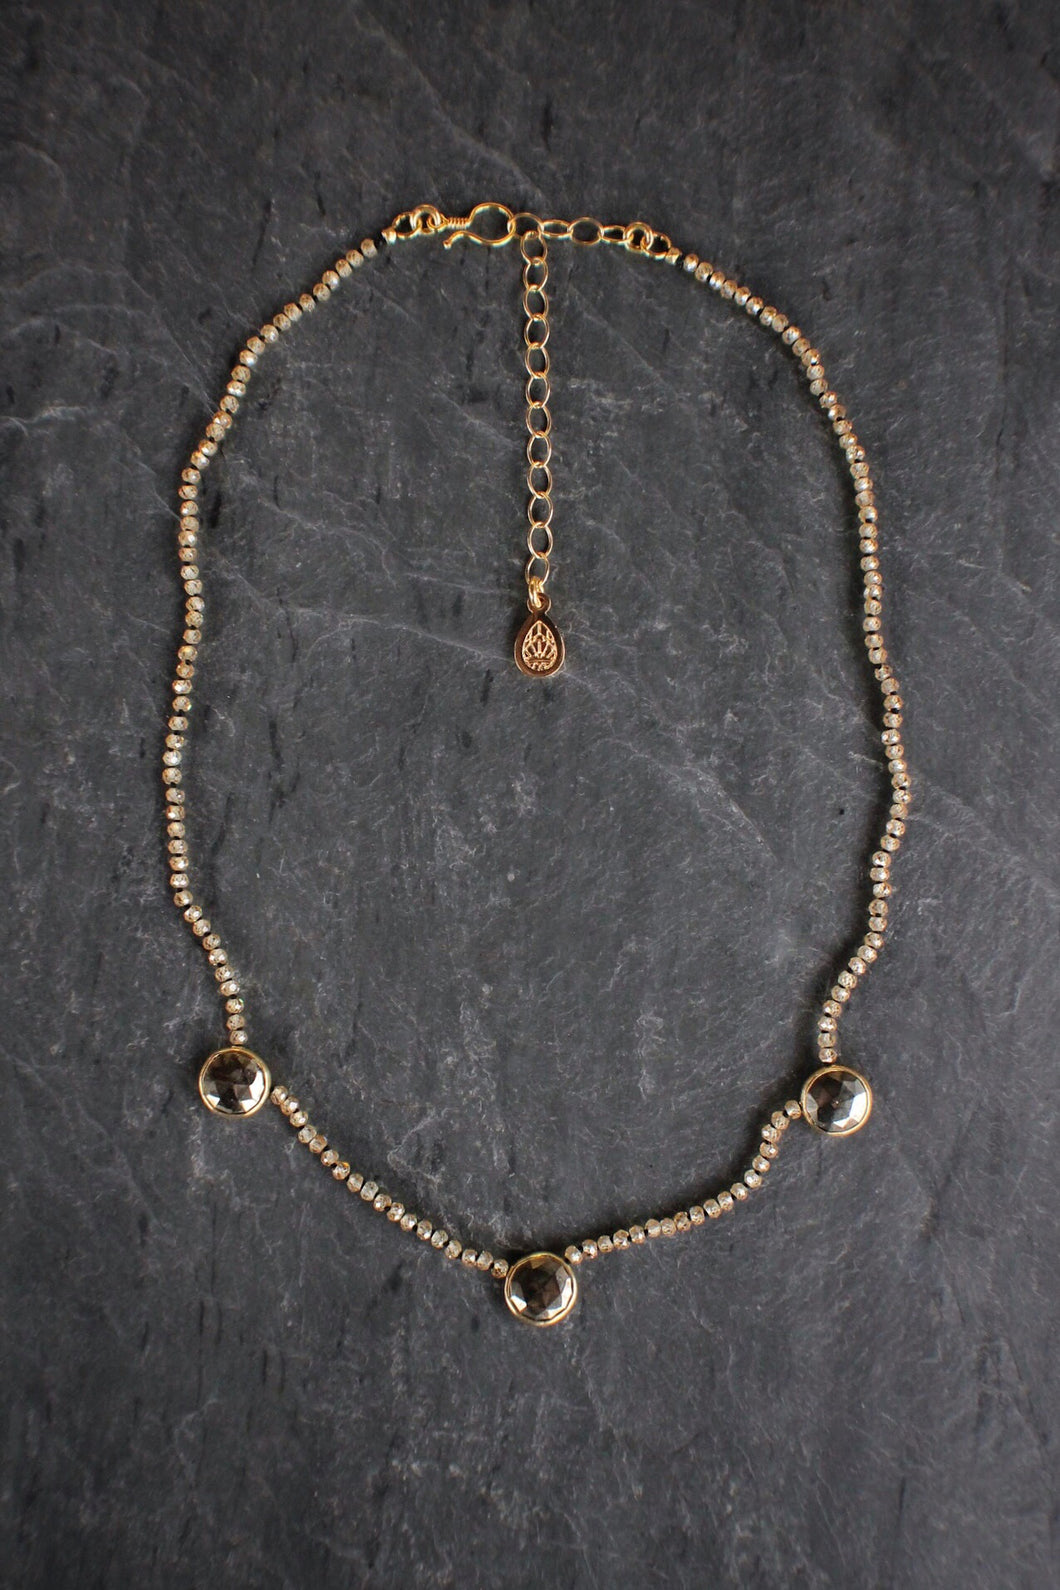 sea and stone jewelry Lab Grown Zircon & Pyrite Station Choker